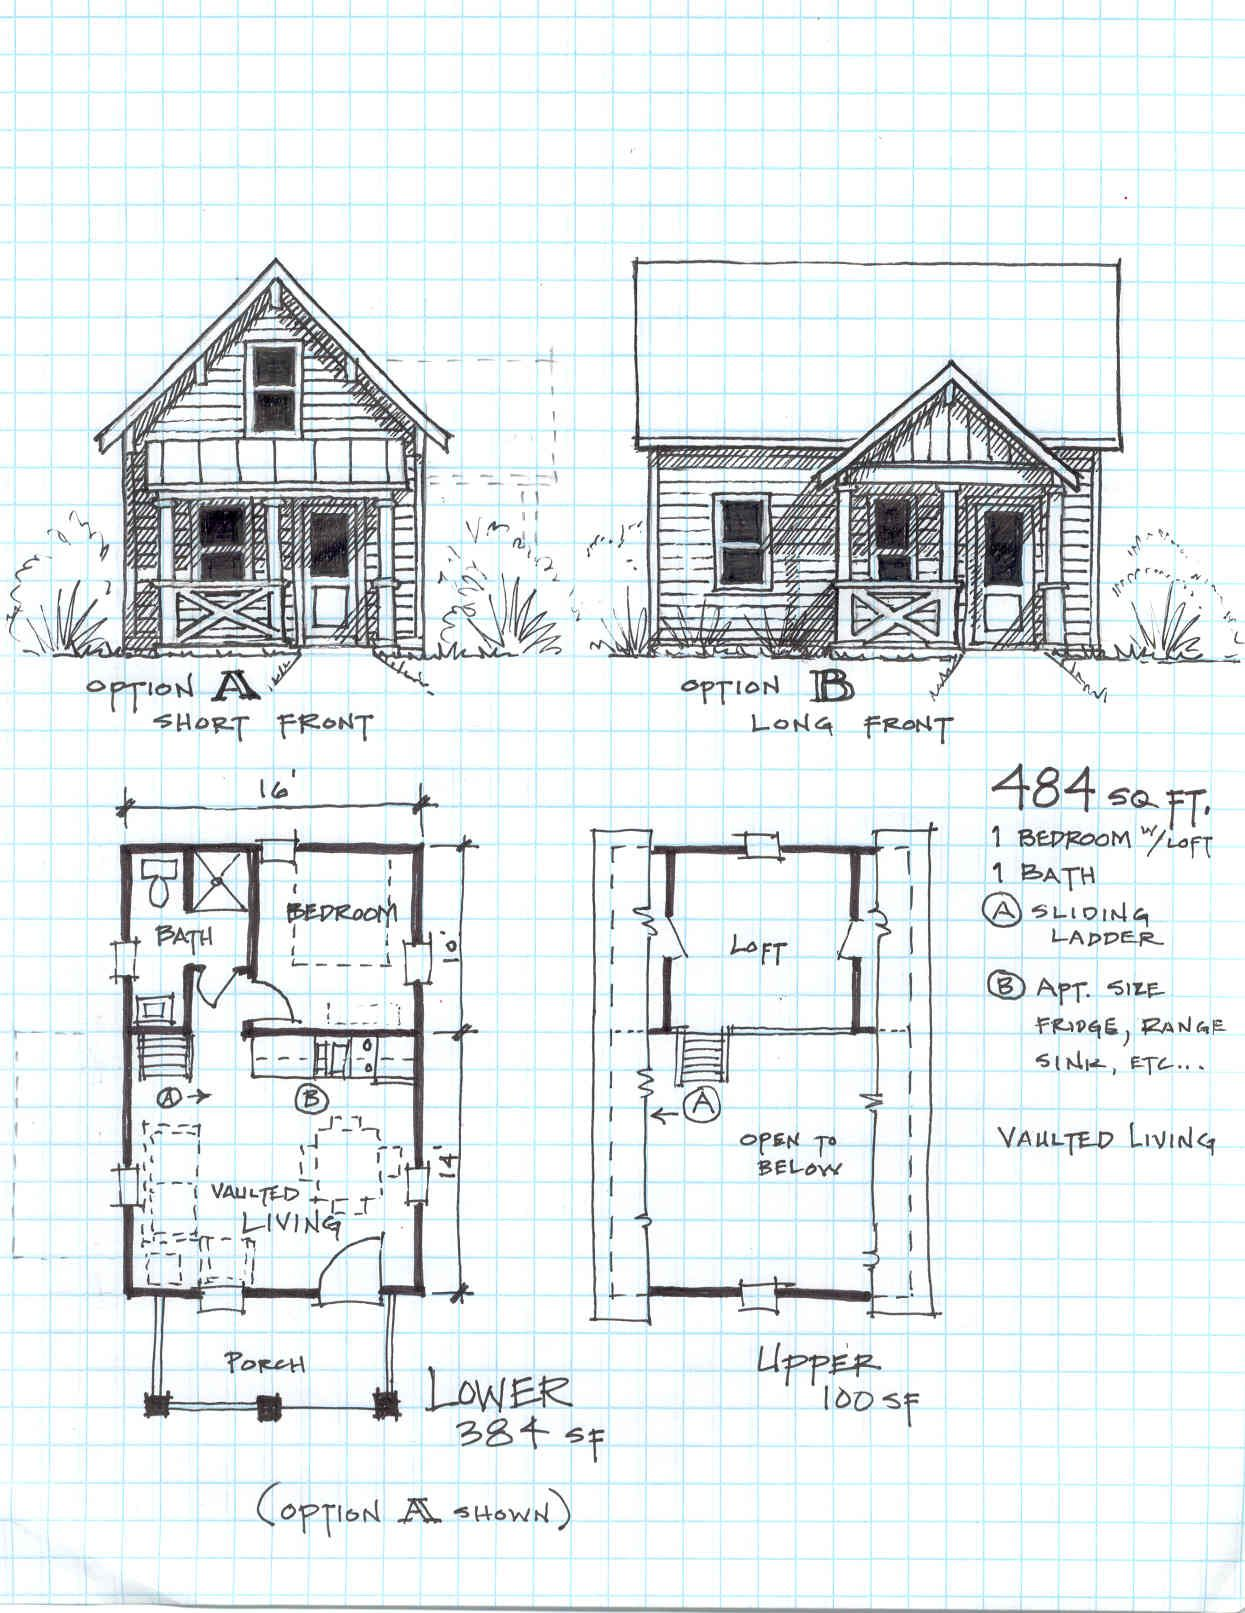 Cool 17 Best Images About 10 12 Ft Wide Tiny Cabins On Pinterest Largest Home Design Picture Inspirations Pitcheantrous